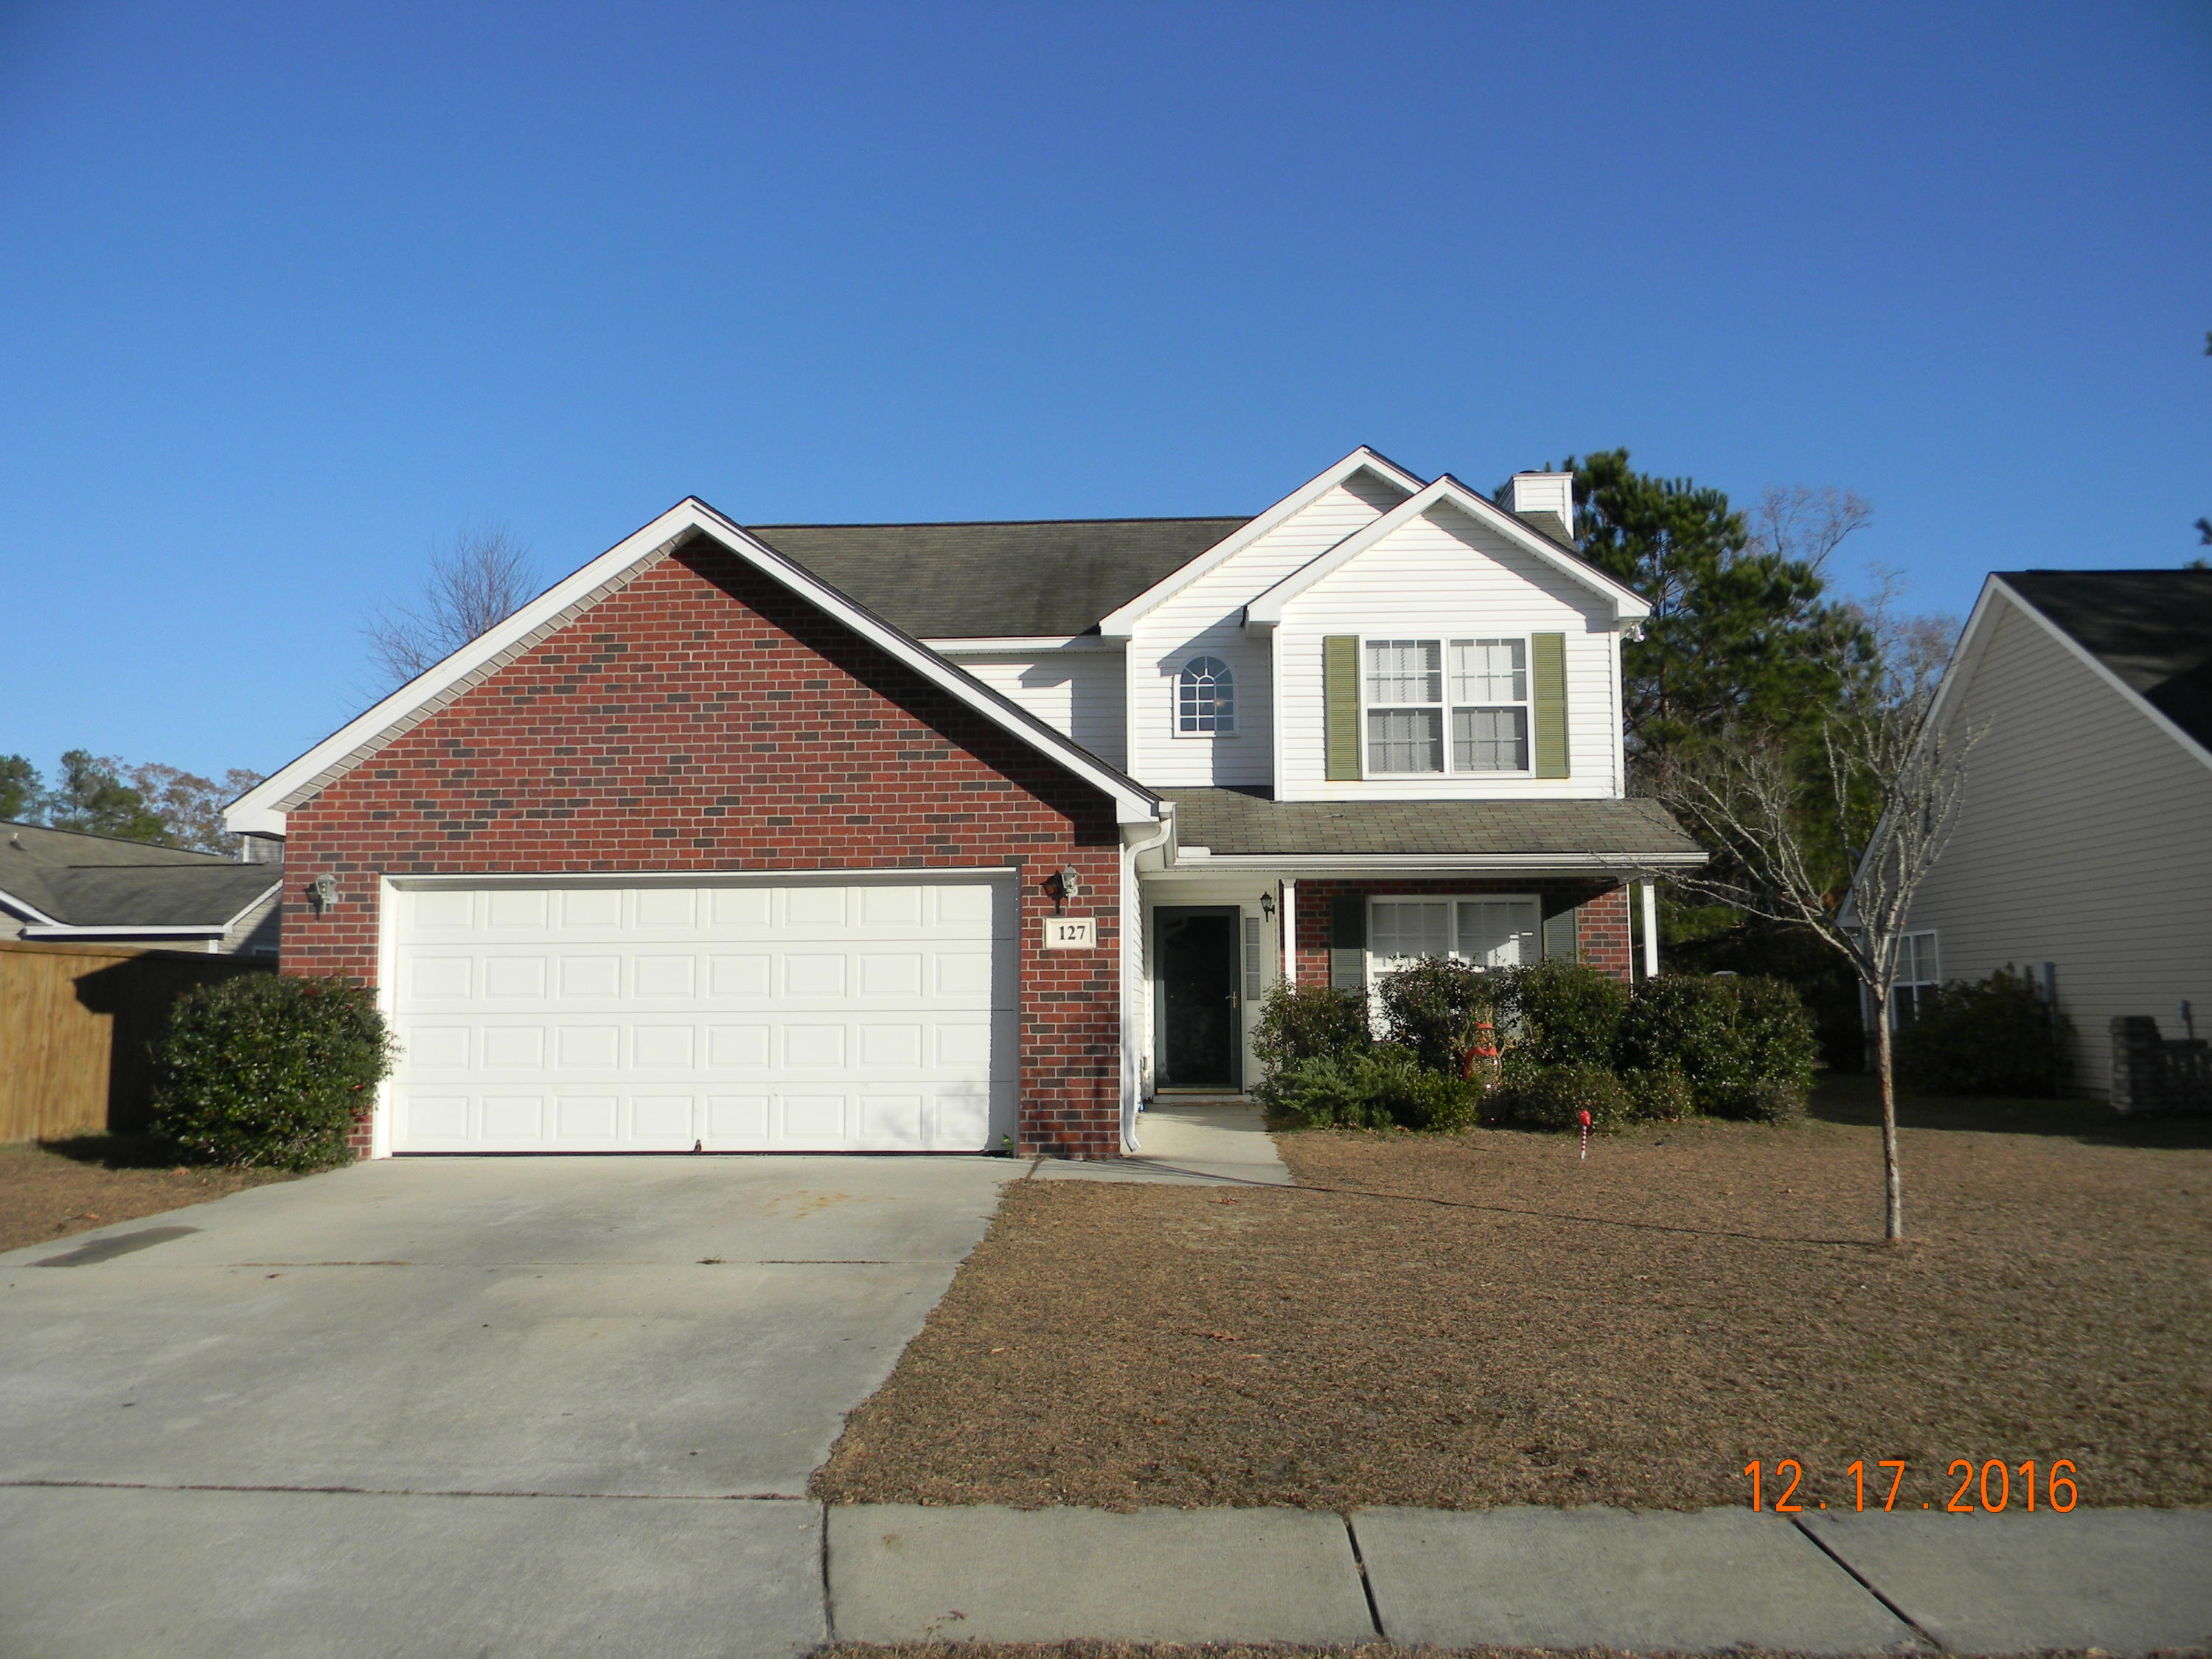 Home for sale 127 Meadowvale Lane, Spring Grove, Goose Creek, SC